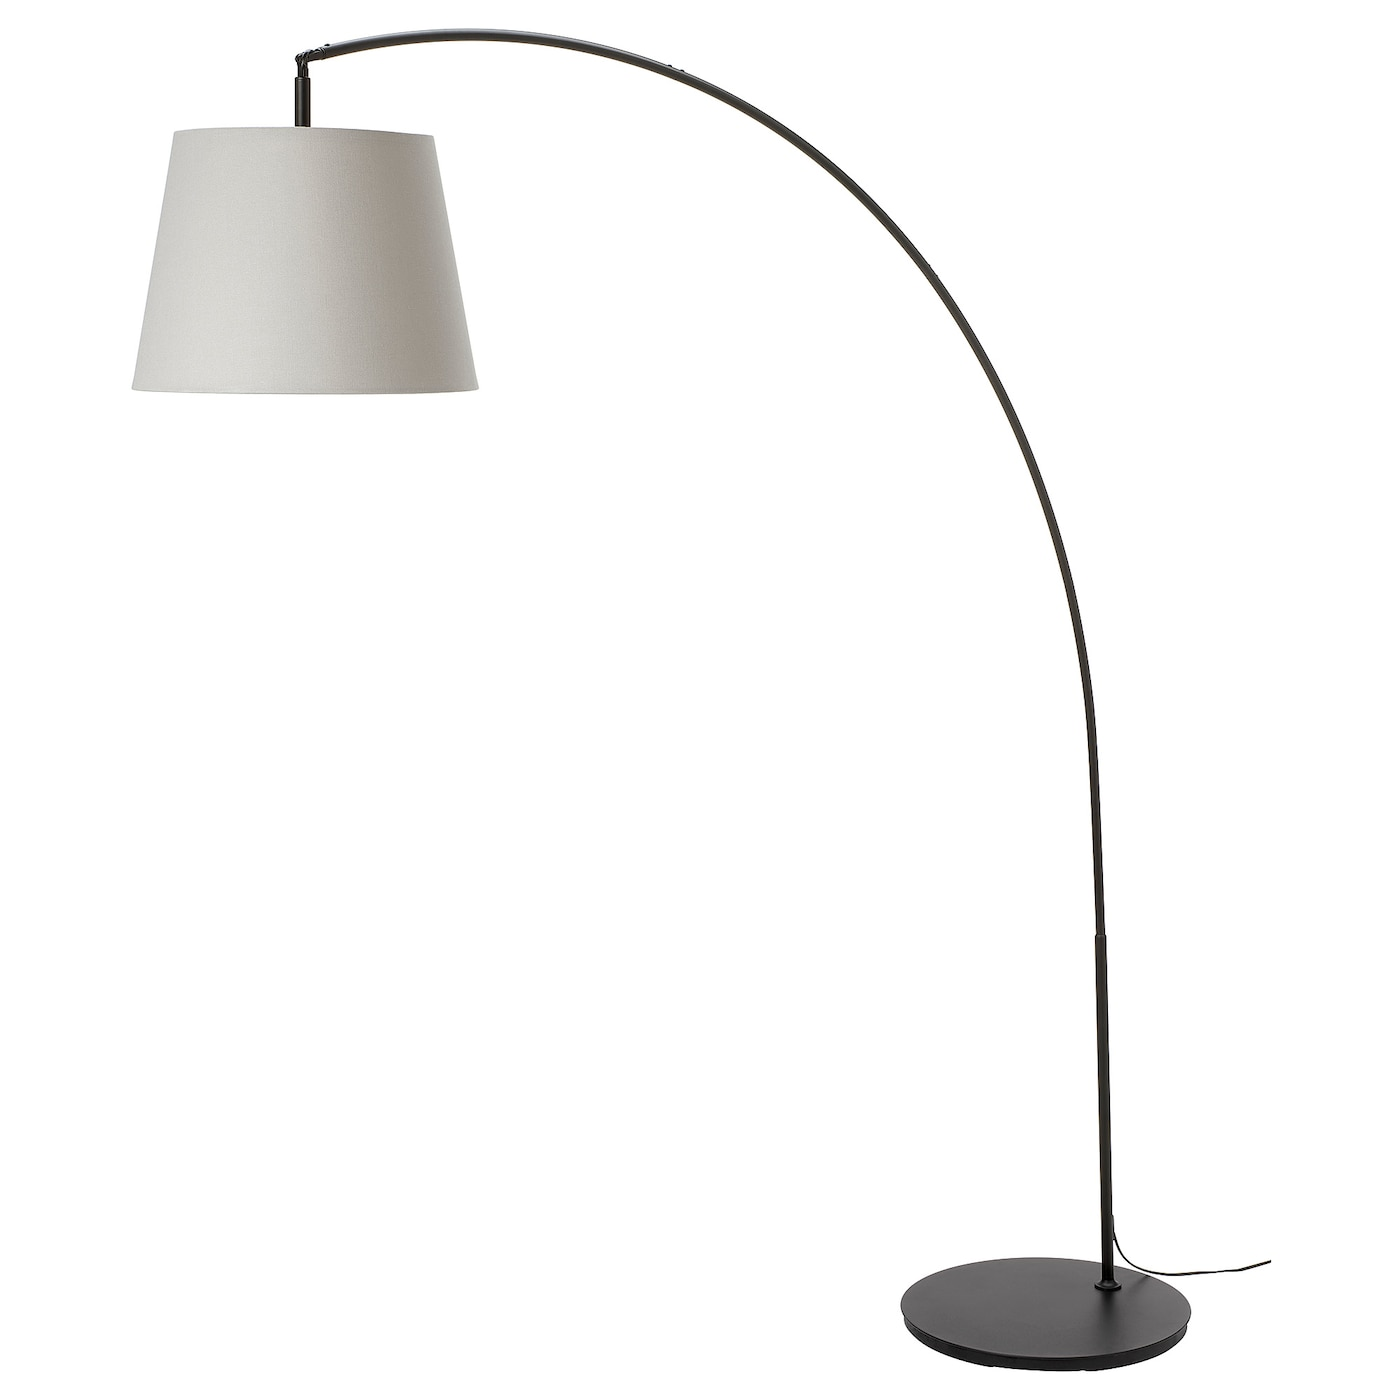 Image of: Skottorp Skaftet Floor Lamp Arched Light Grey Ikea